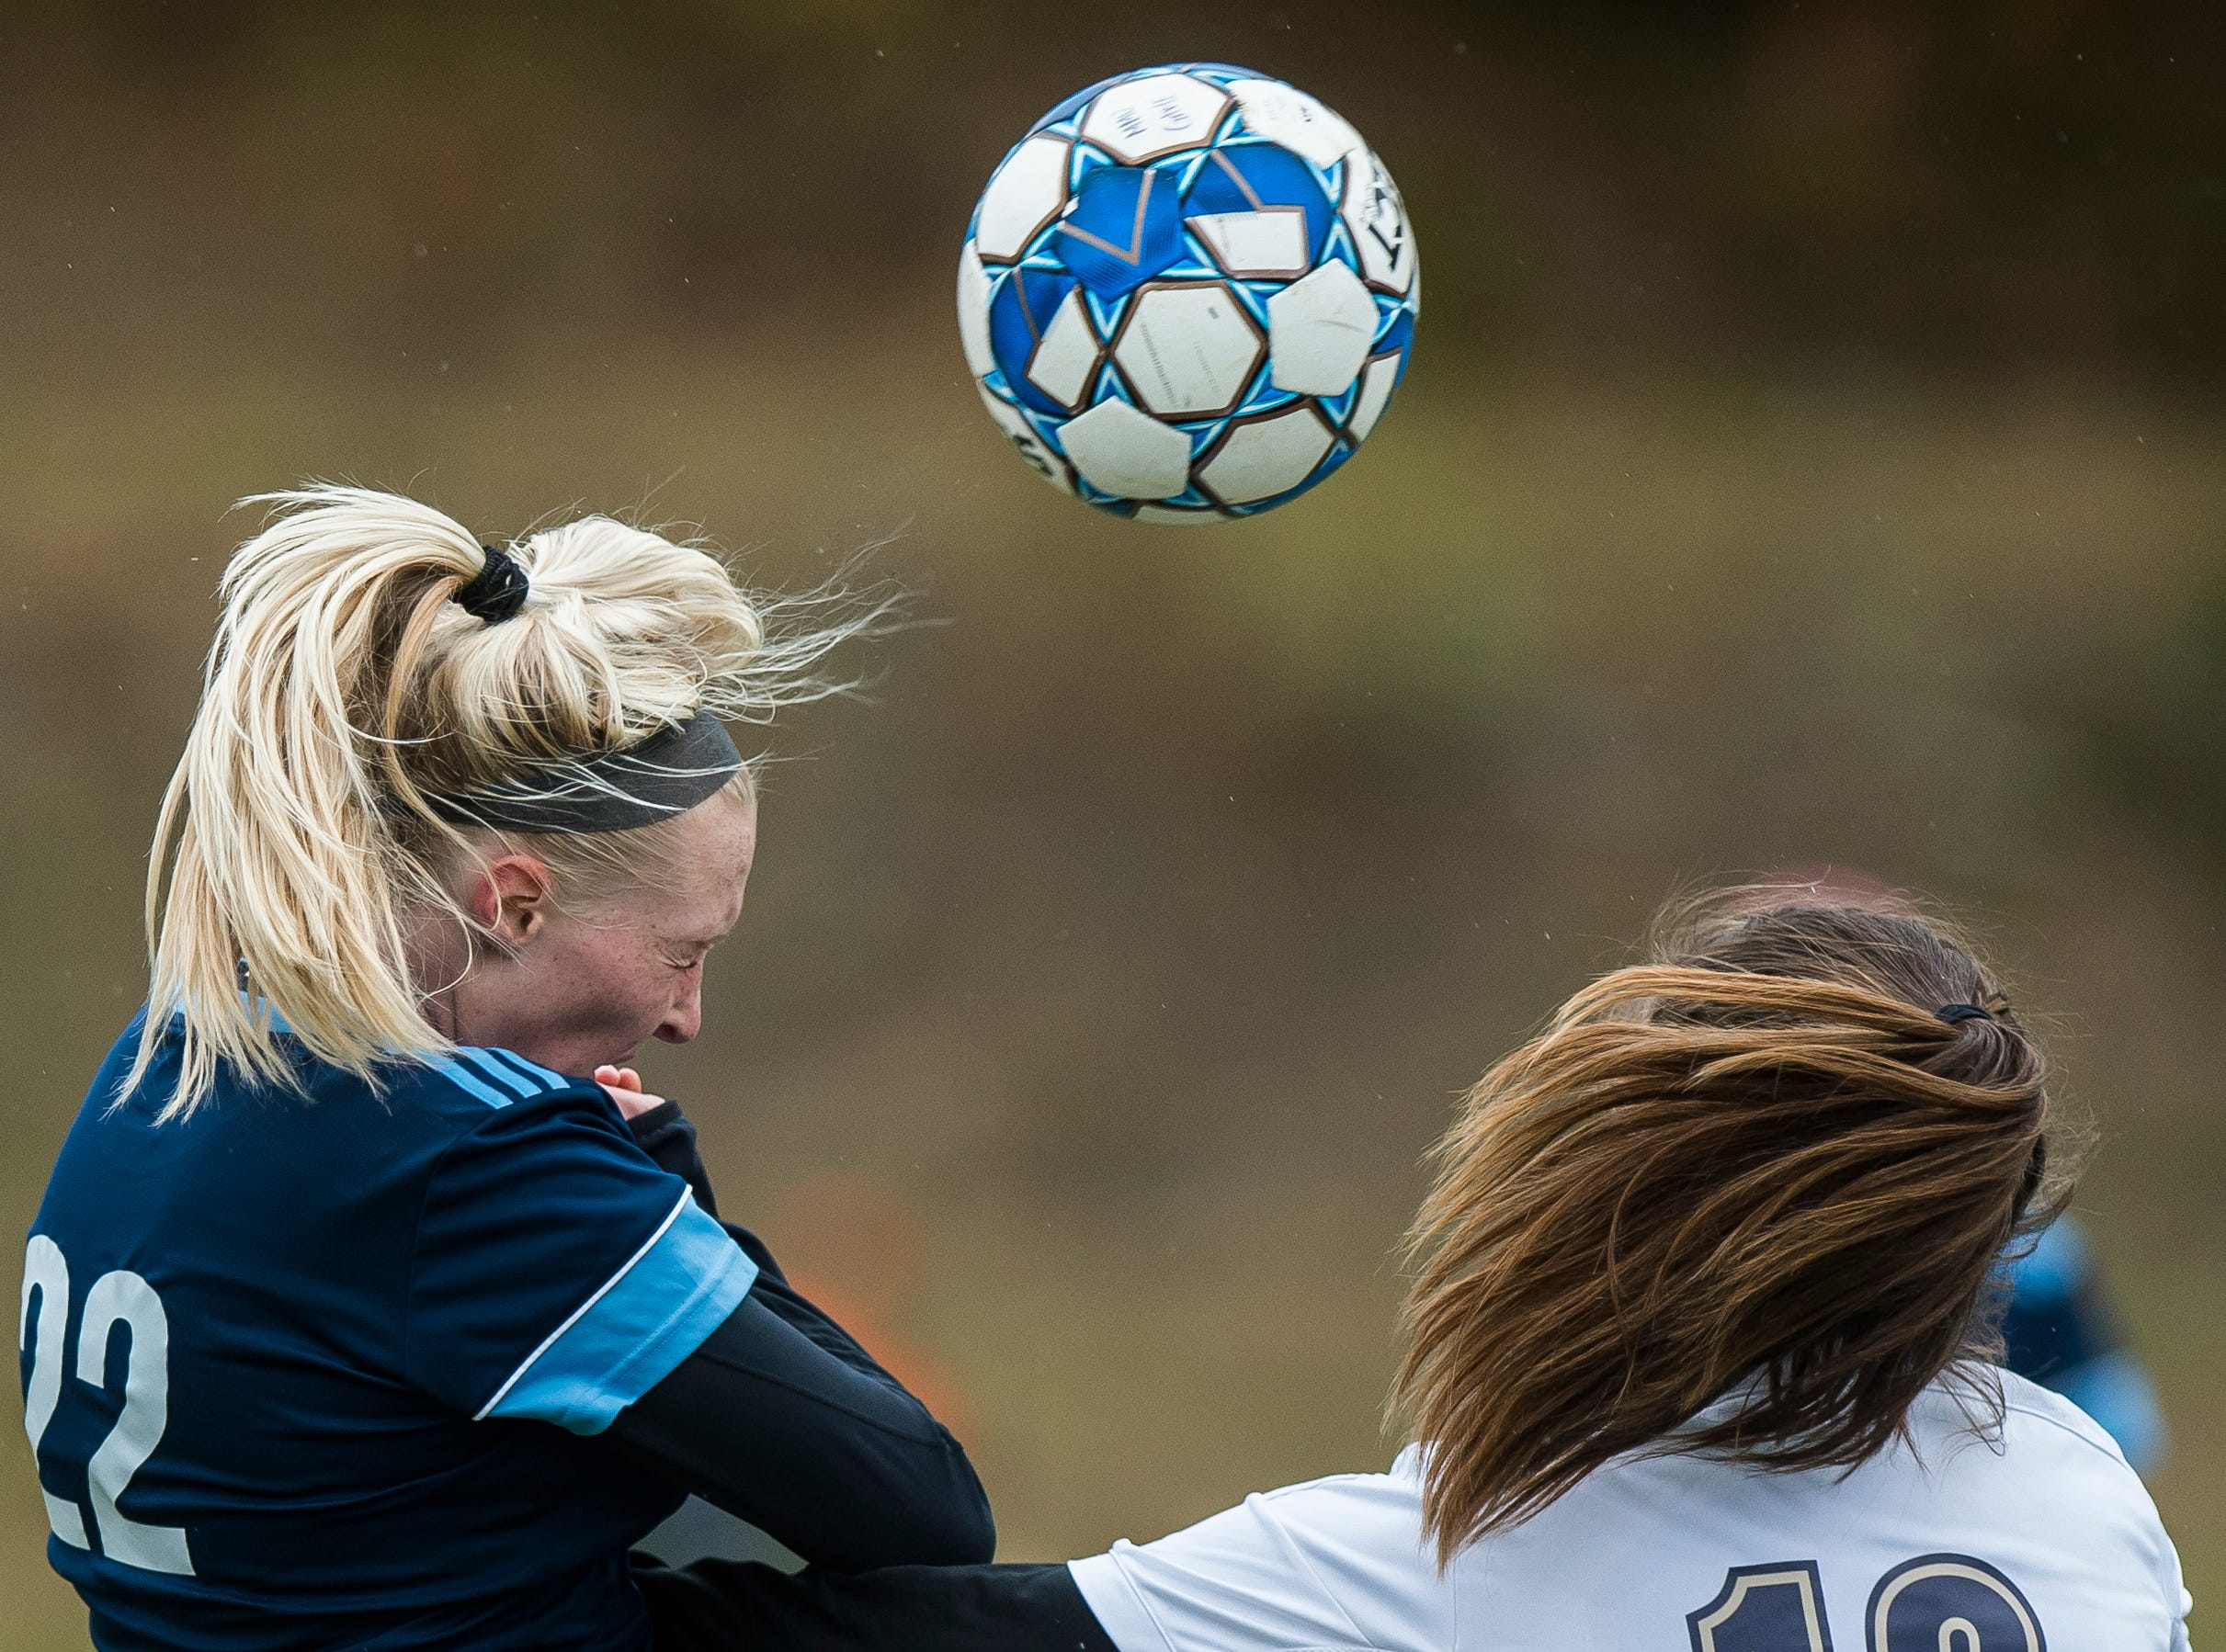 MMU #22 Willa Clark claims the header over Essex #18 Francesca Martin during their quarter-final game in Jericho on Saturday, Oct. 27, 2018, that went into double overtime and shootout. Essex took the penalty kick contest to win, 4-1.